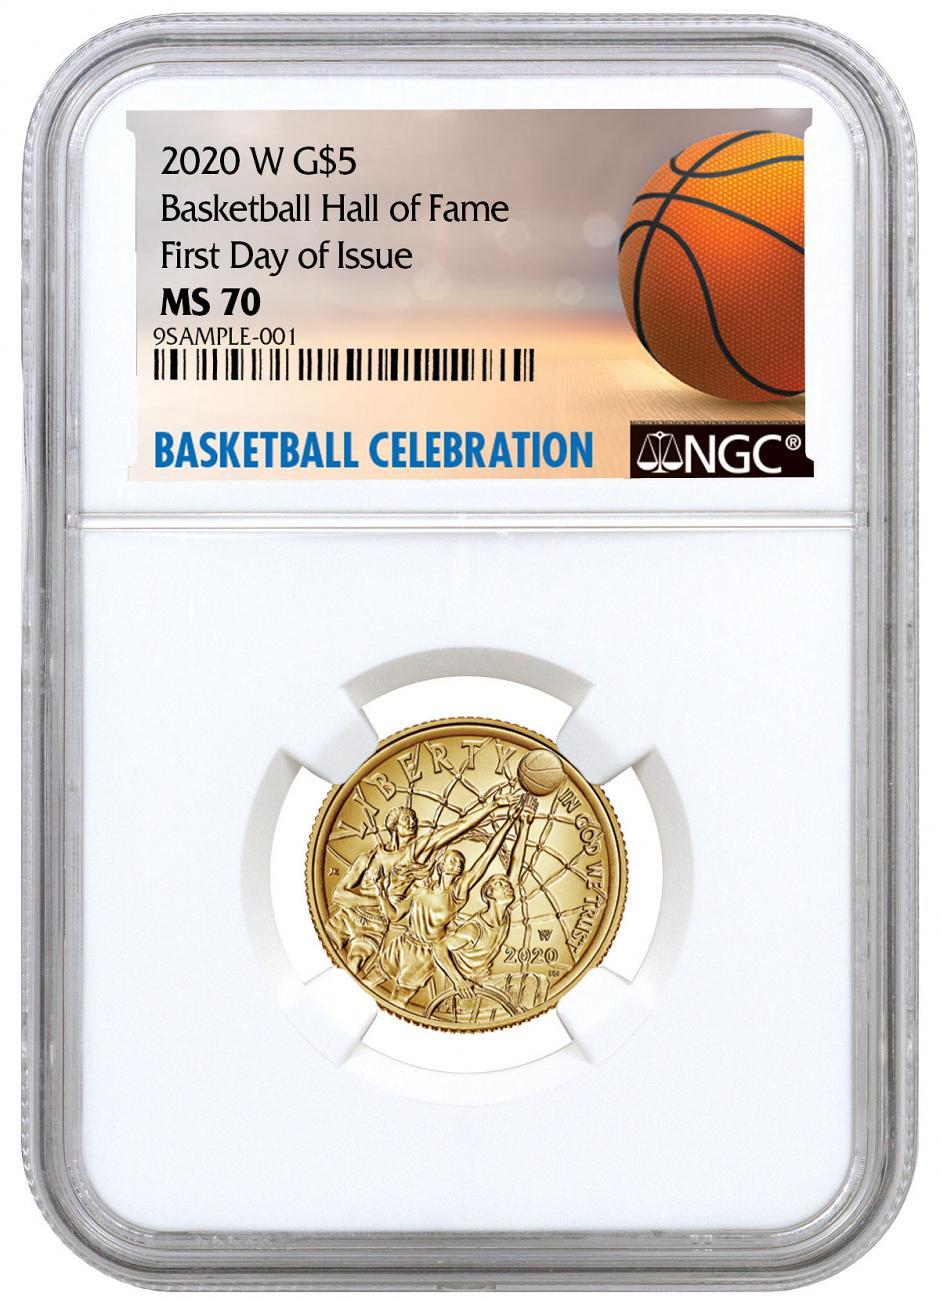 2020-W $5 Basketball Hall of Fame Gold Coin NGC MS70 FDI